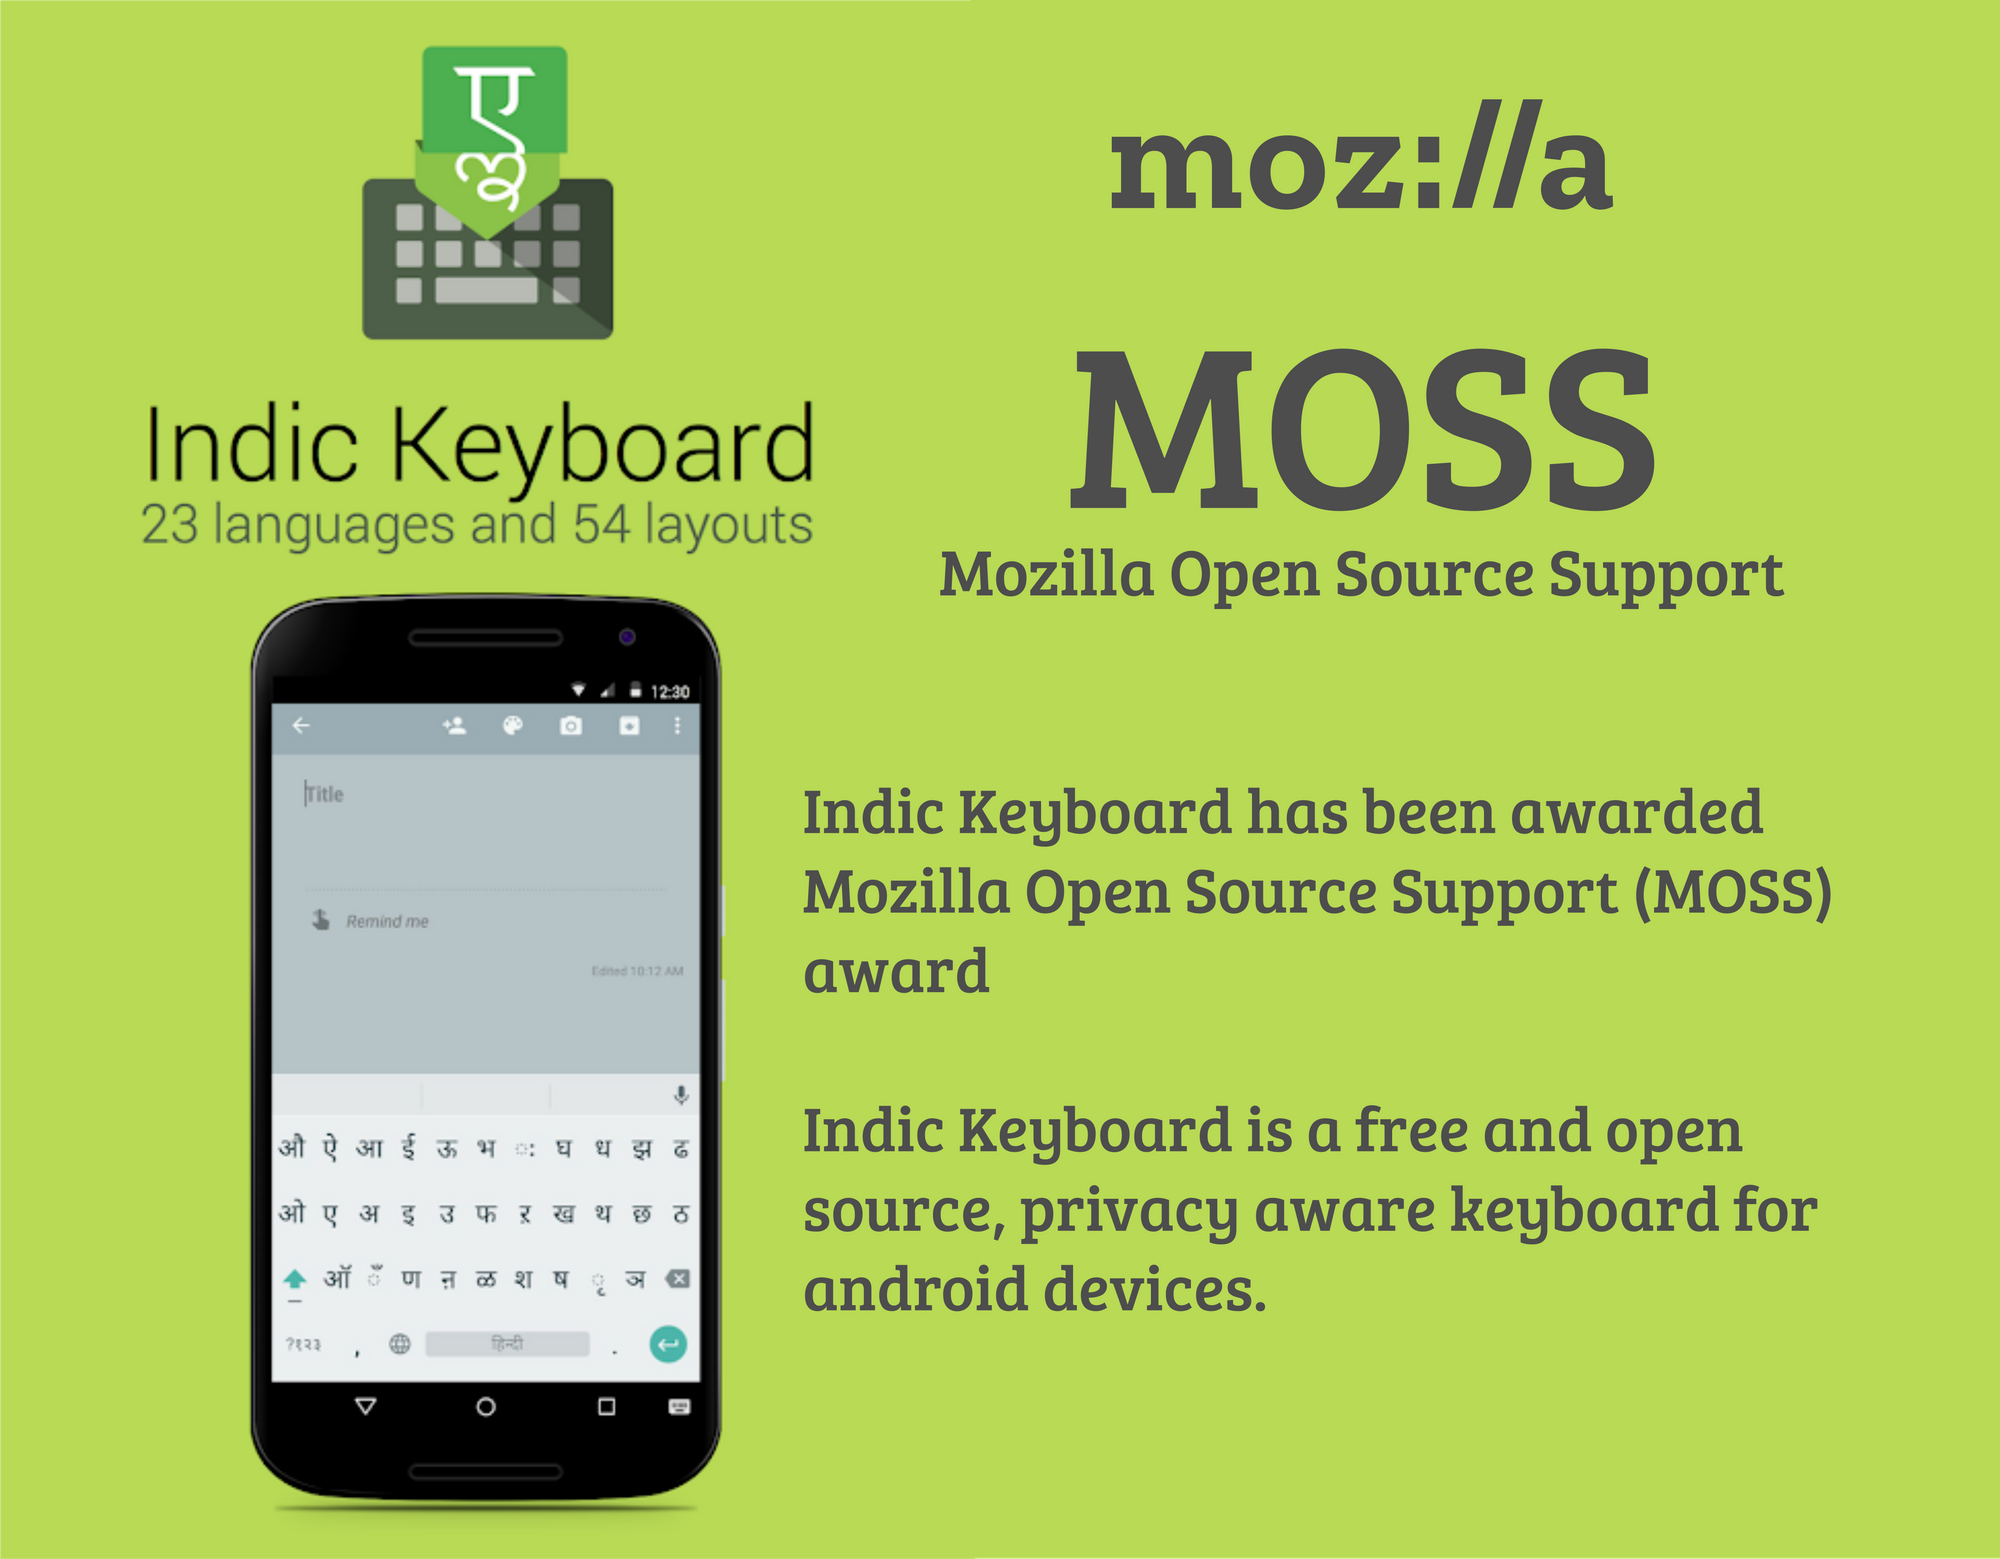 Indic Keyboard has been awarded Mozilla Open Source Support (MOSS) award